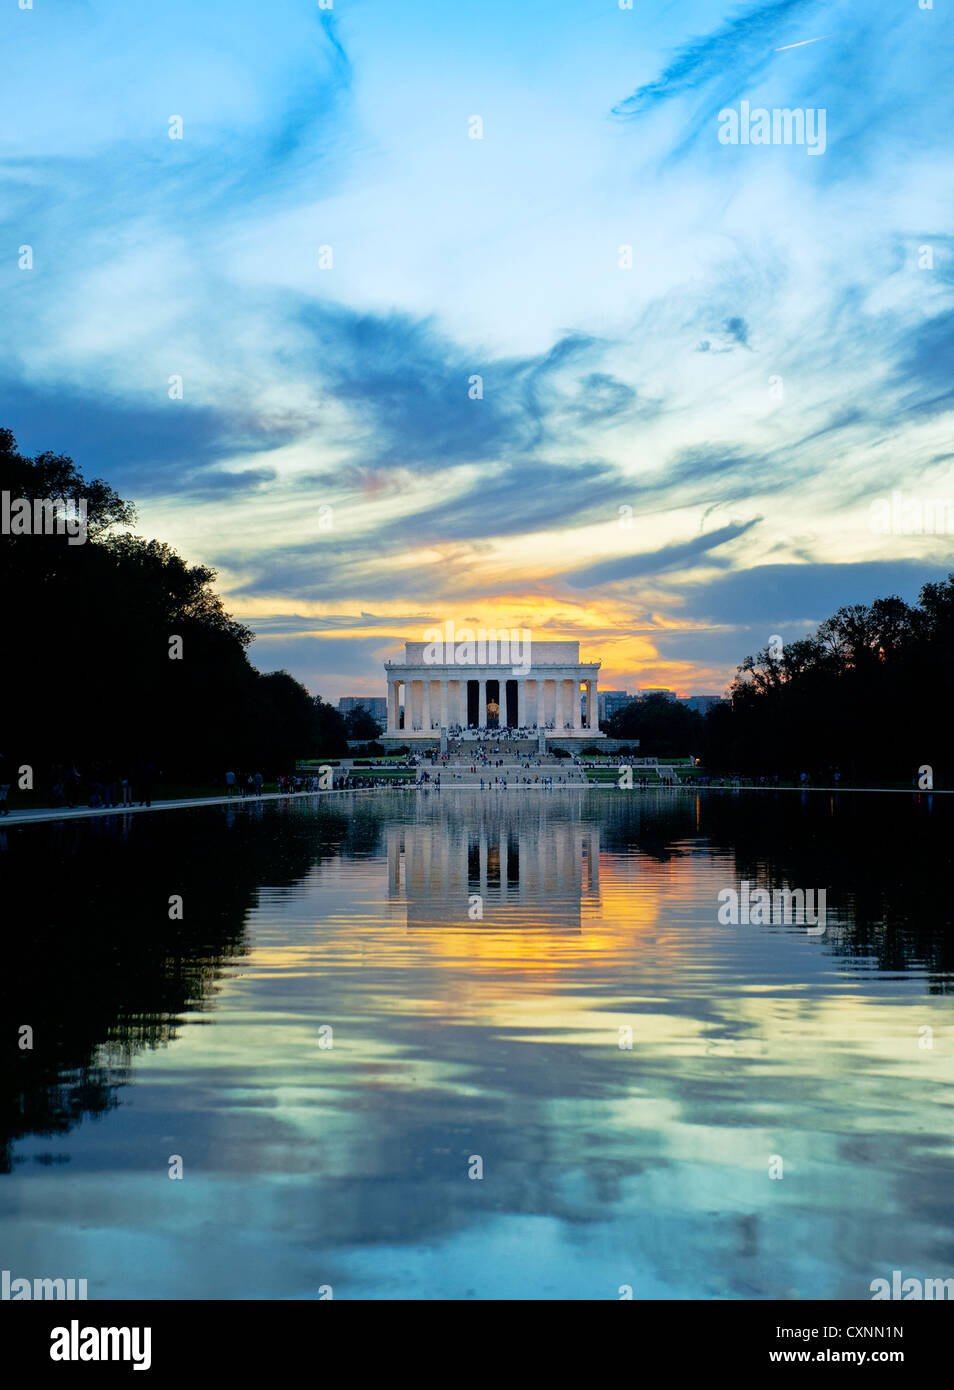 The Lincoln Memorial with dramatic sky and reflection in the newly refurbished reflecting pool. Washington DC - Stock Image